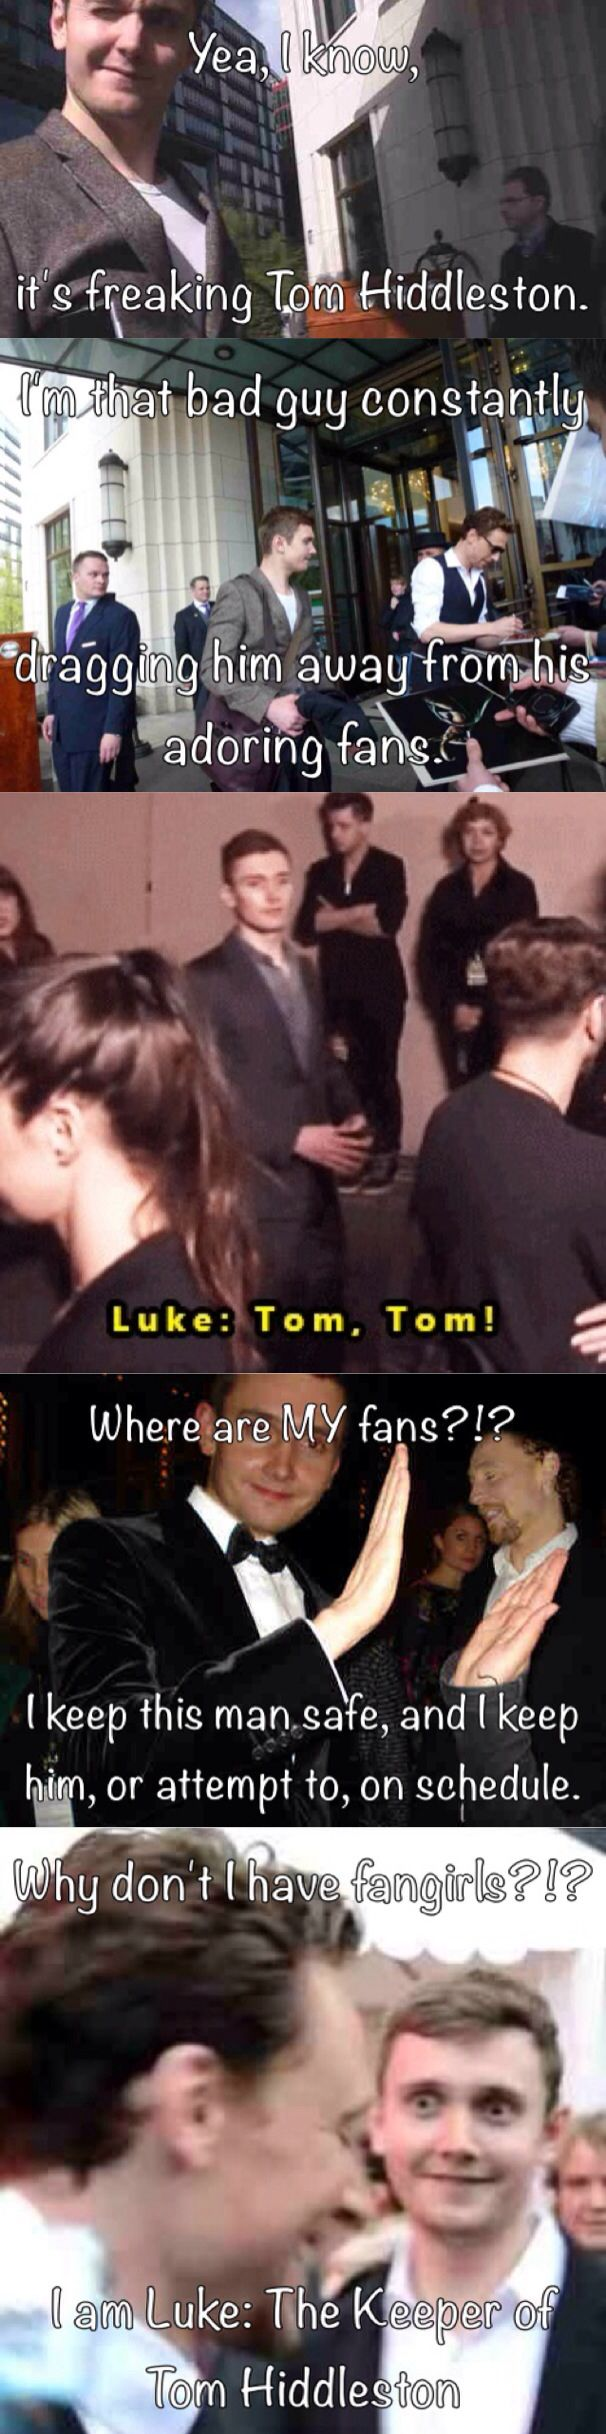 Luke: Keeper of The Hiddles || Hahaha :) I admit, he is kinda cute, buuut... One does not even compare when Tom Hiddleston is around ;)